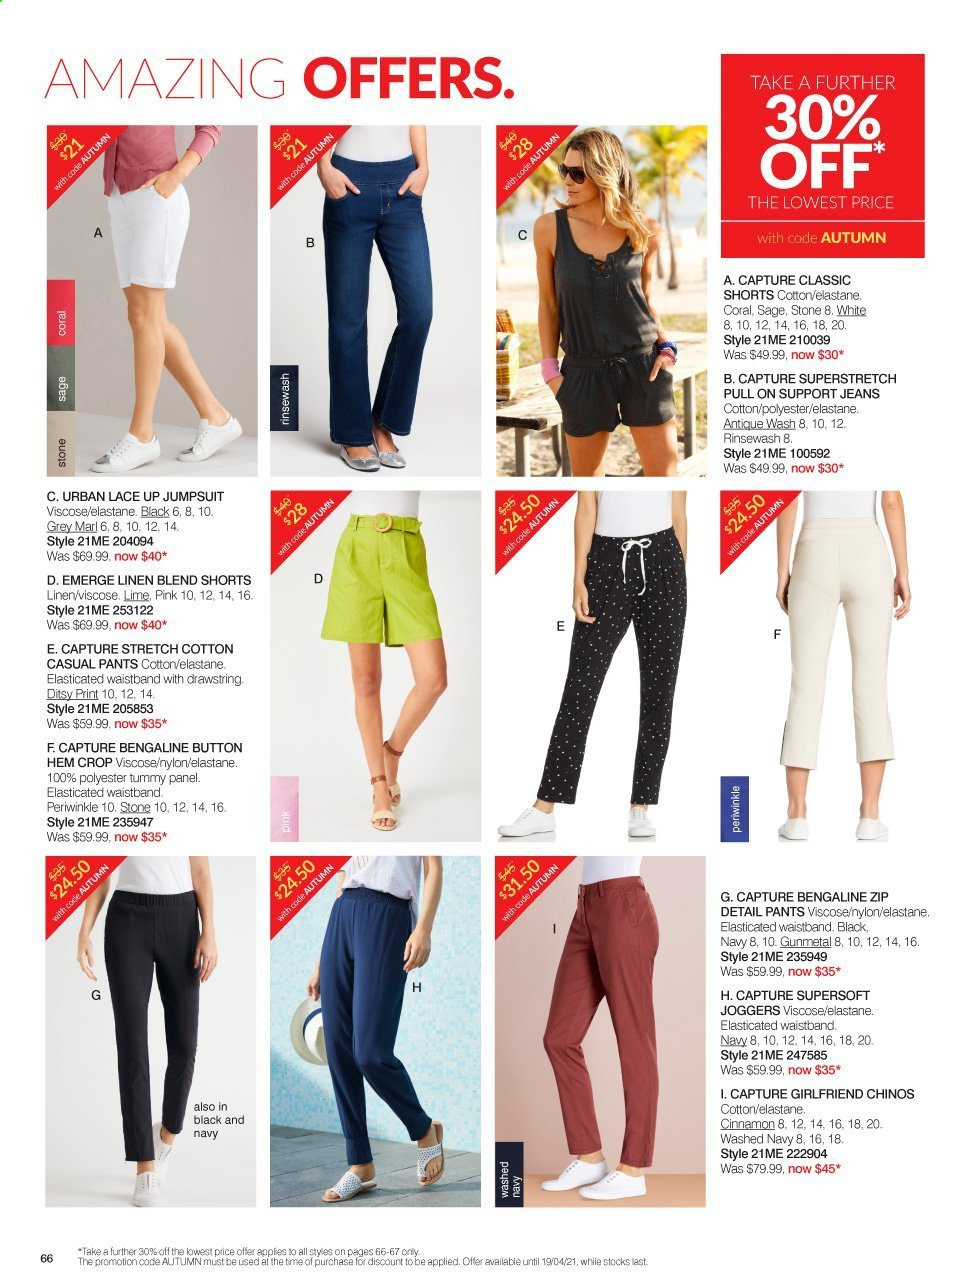 Ezibuy mailer - 09.03.2021 - 19.04.2021 - Sales products - jeans, pants, jumpsuit, shorts. Page 66.